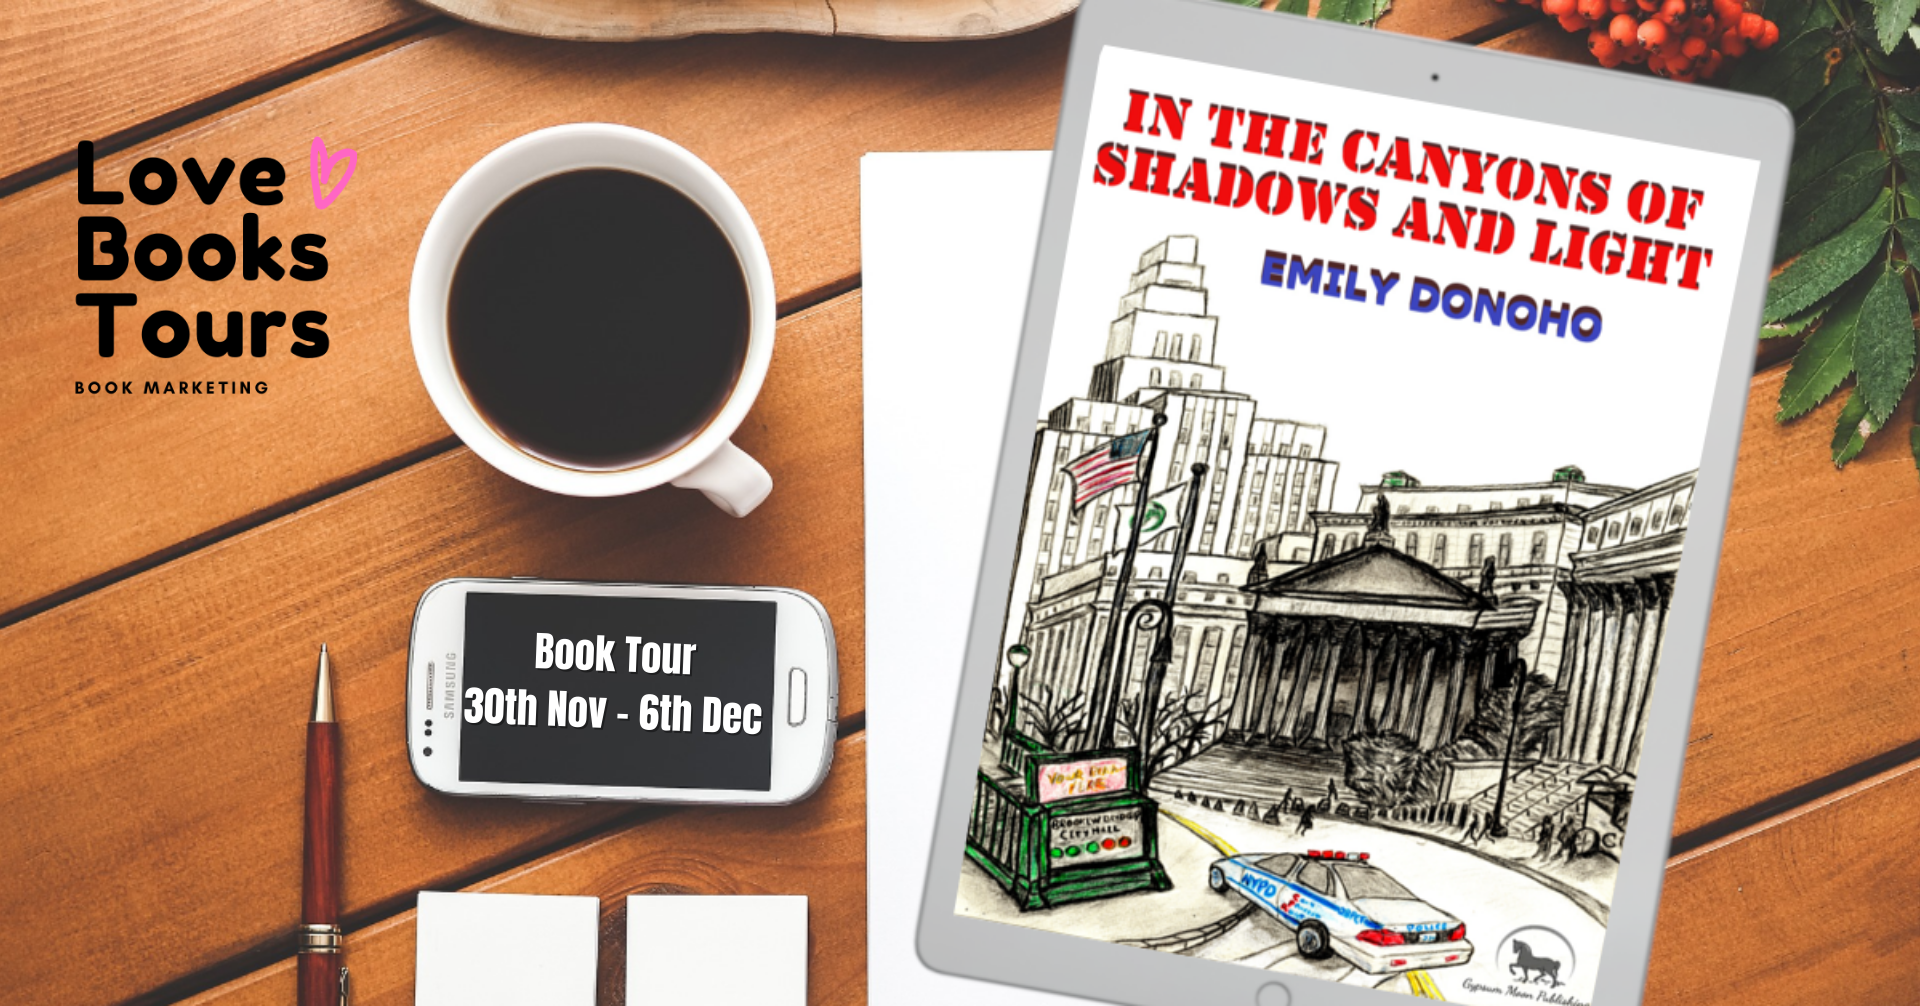 In the Canyons of Shadow and Light - Tour Twitter